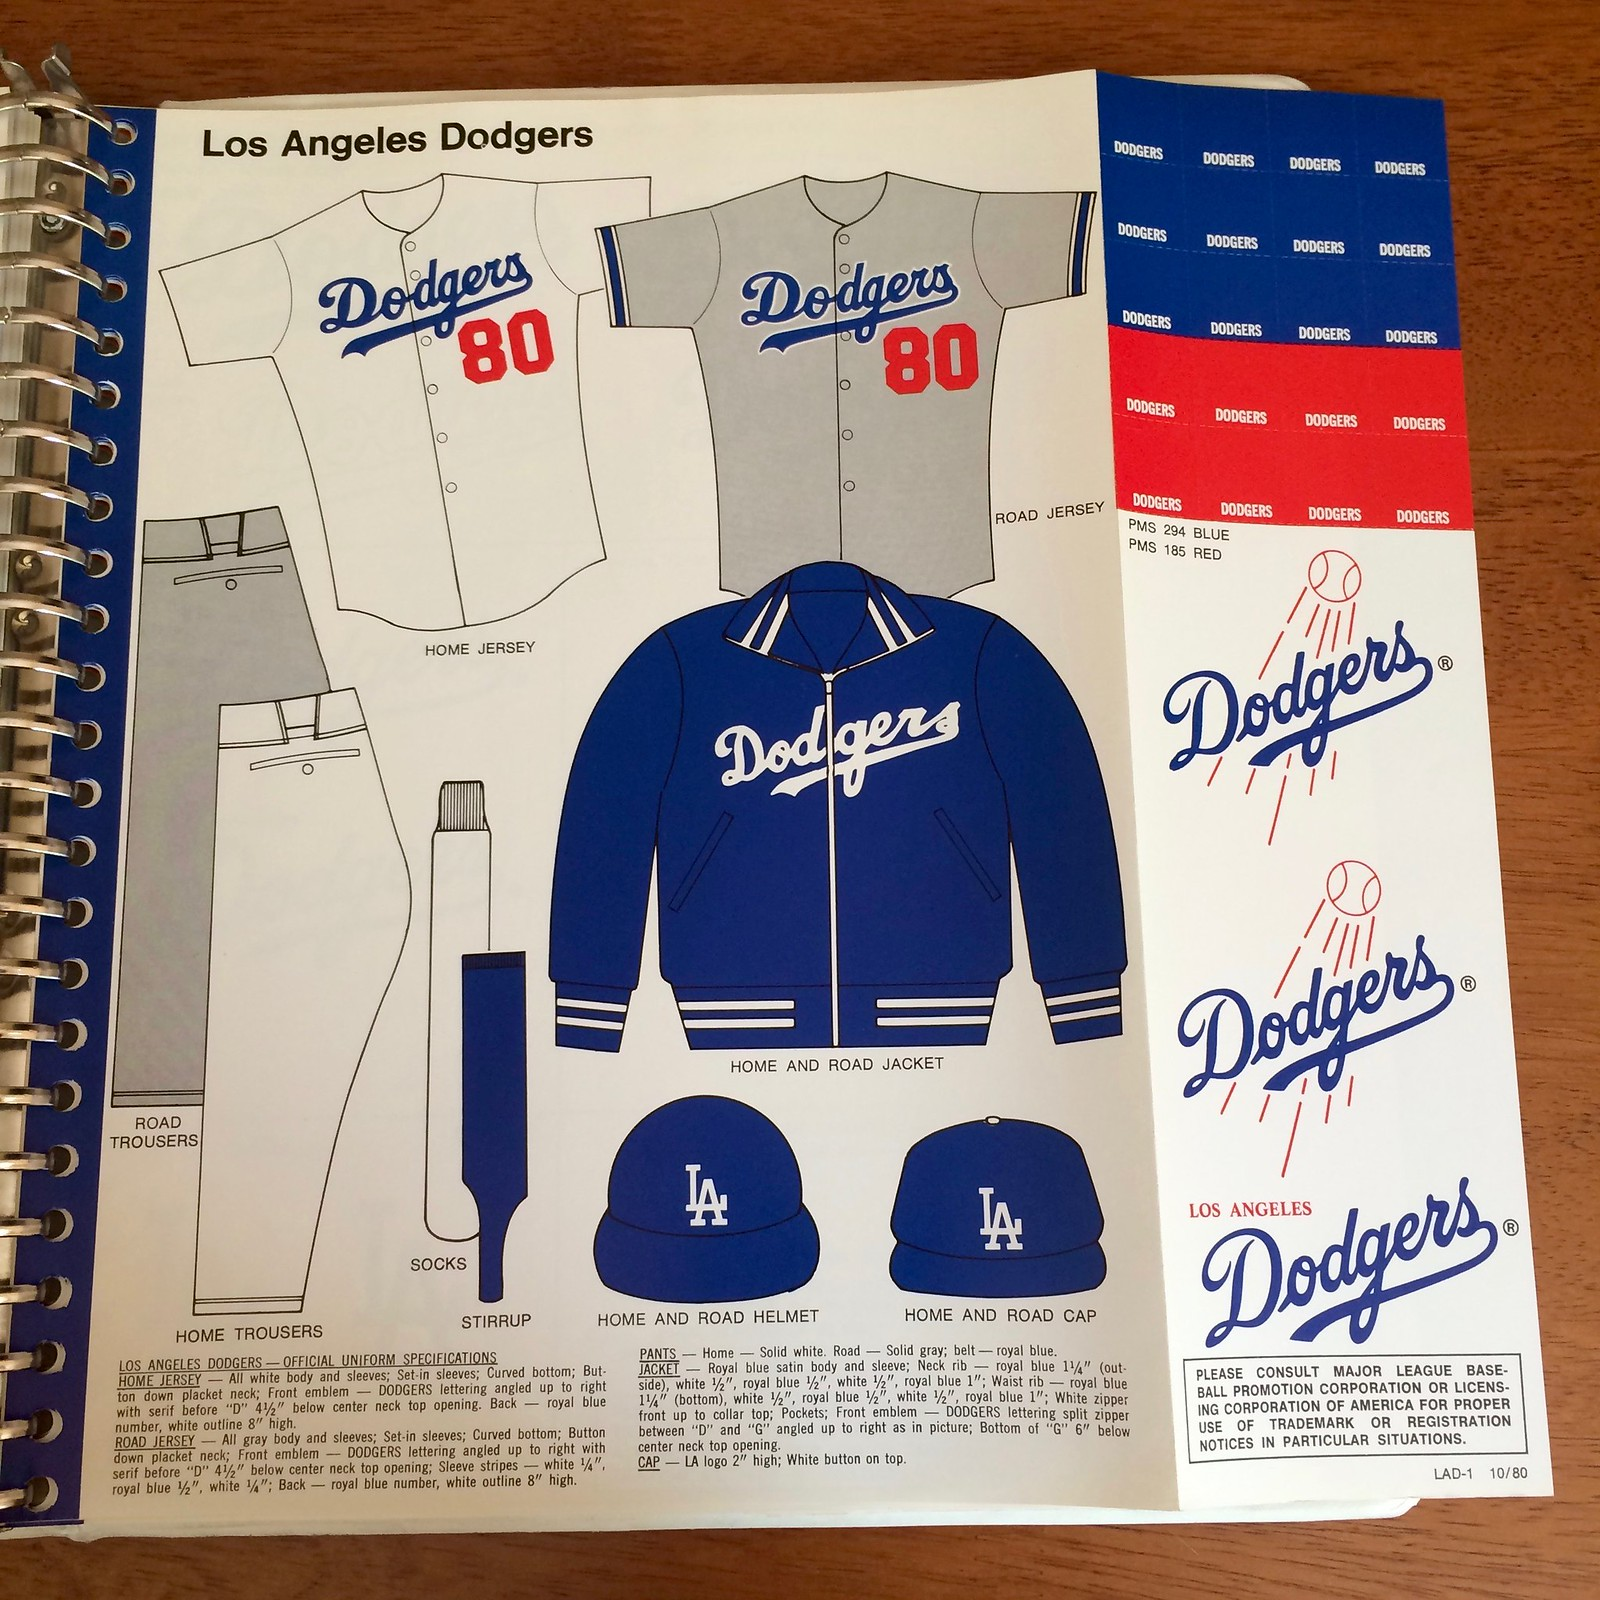 dc78d7ee The Expos' sheet is the only one that shows a rear view of the batting  helmet and cap: